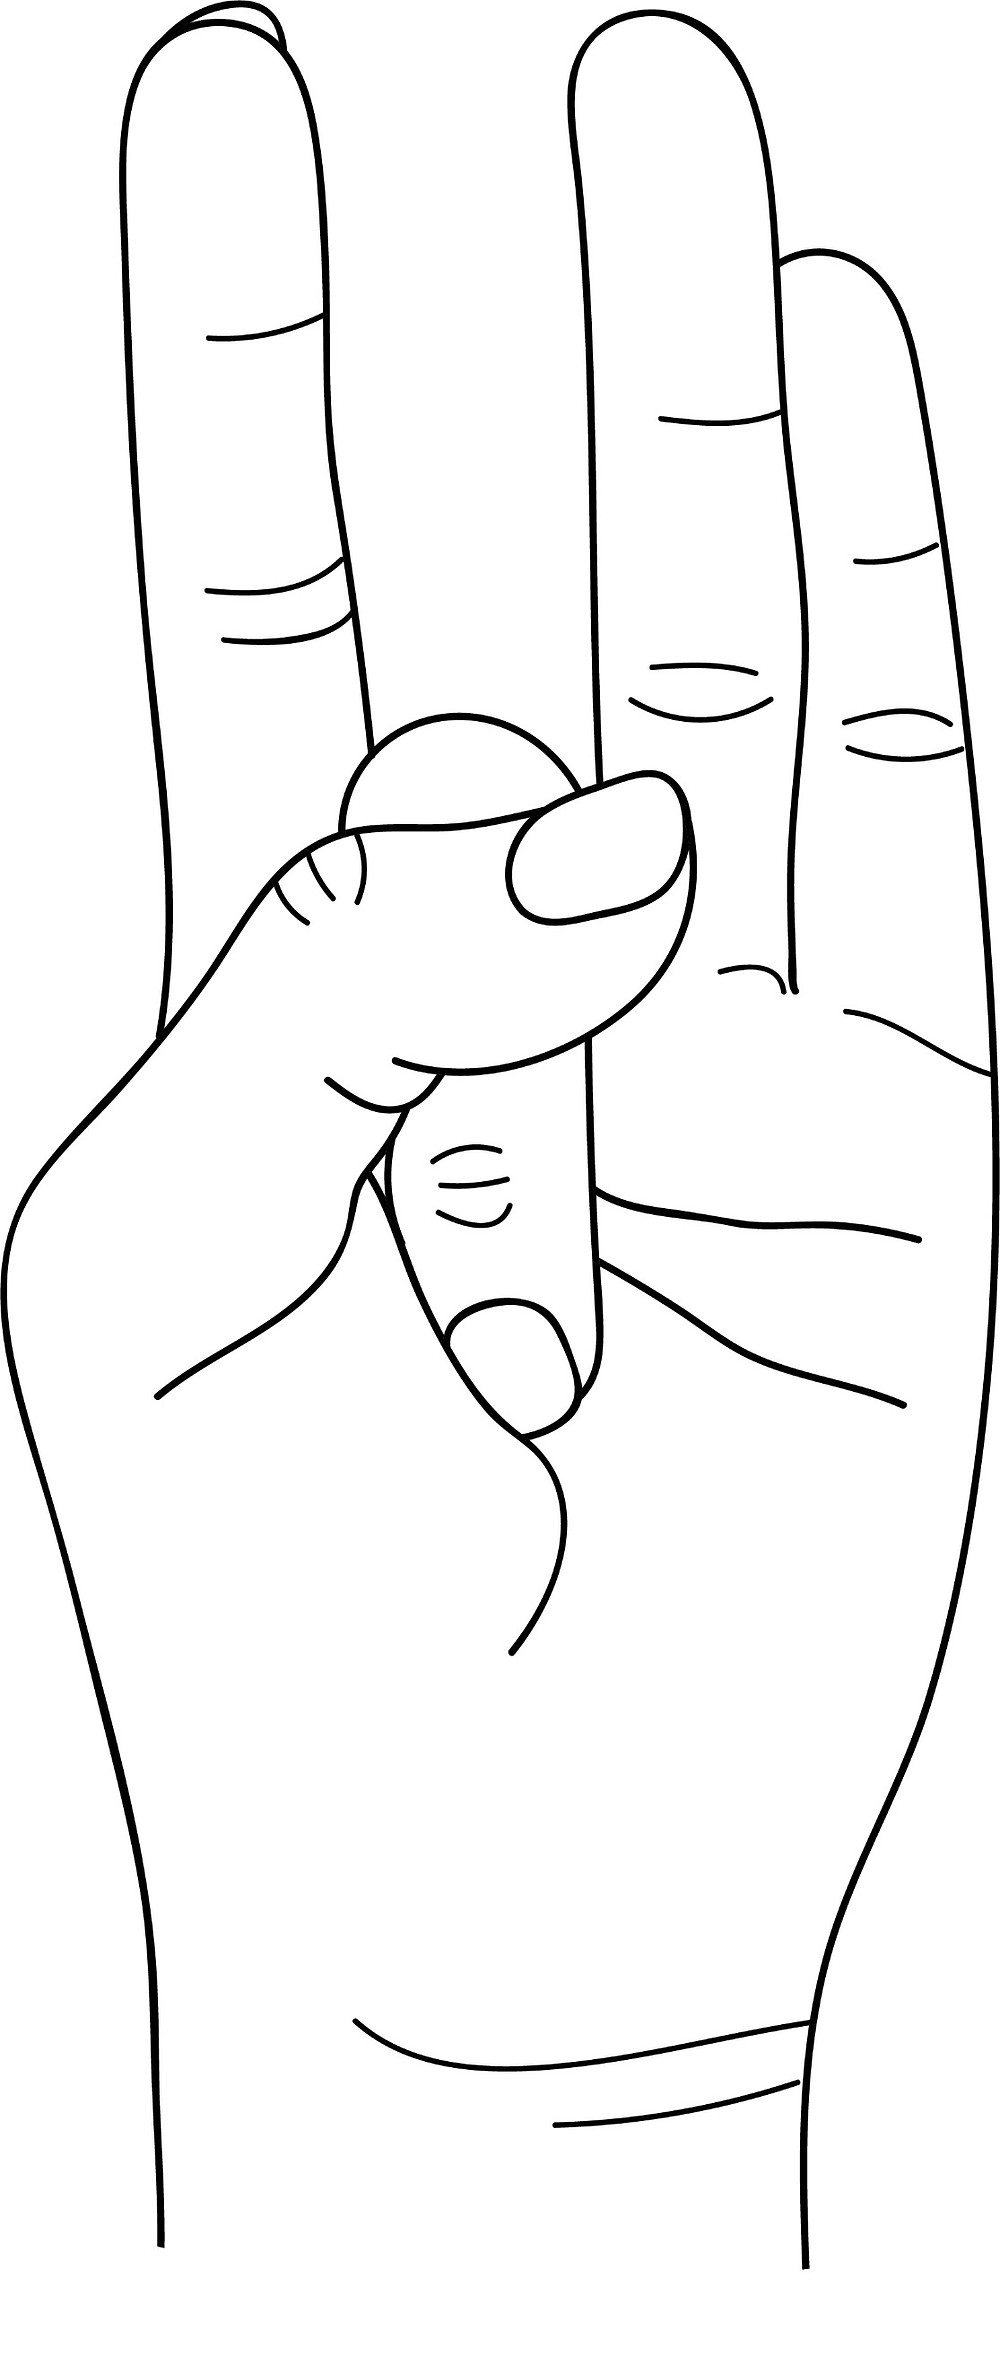 Mudra of Emptiness (Shunya Mudra) -   Bend the middle finger and place it at the ball of the thumb – then press it with the thumb.